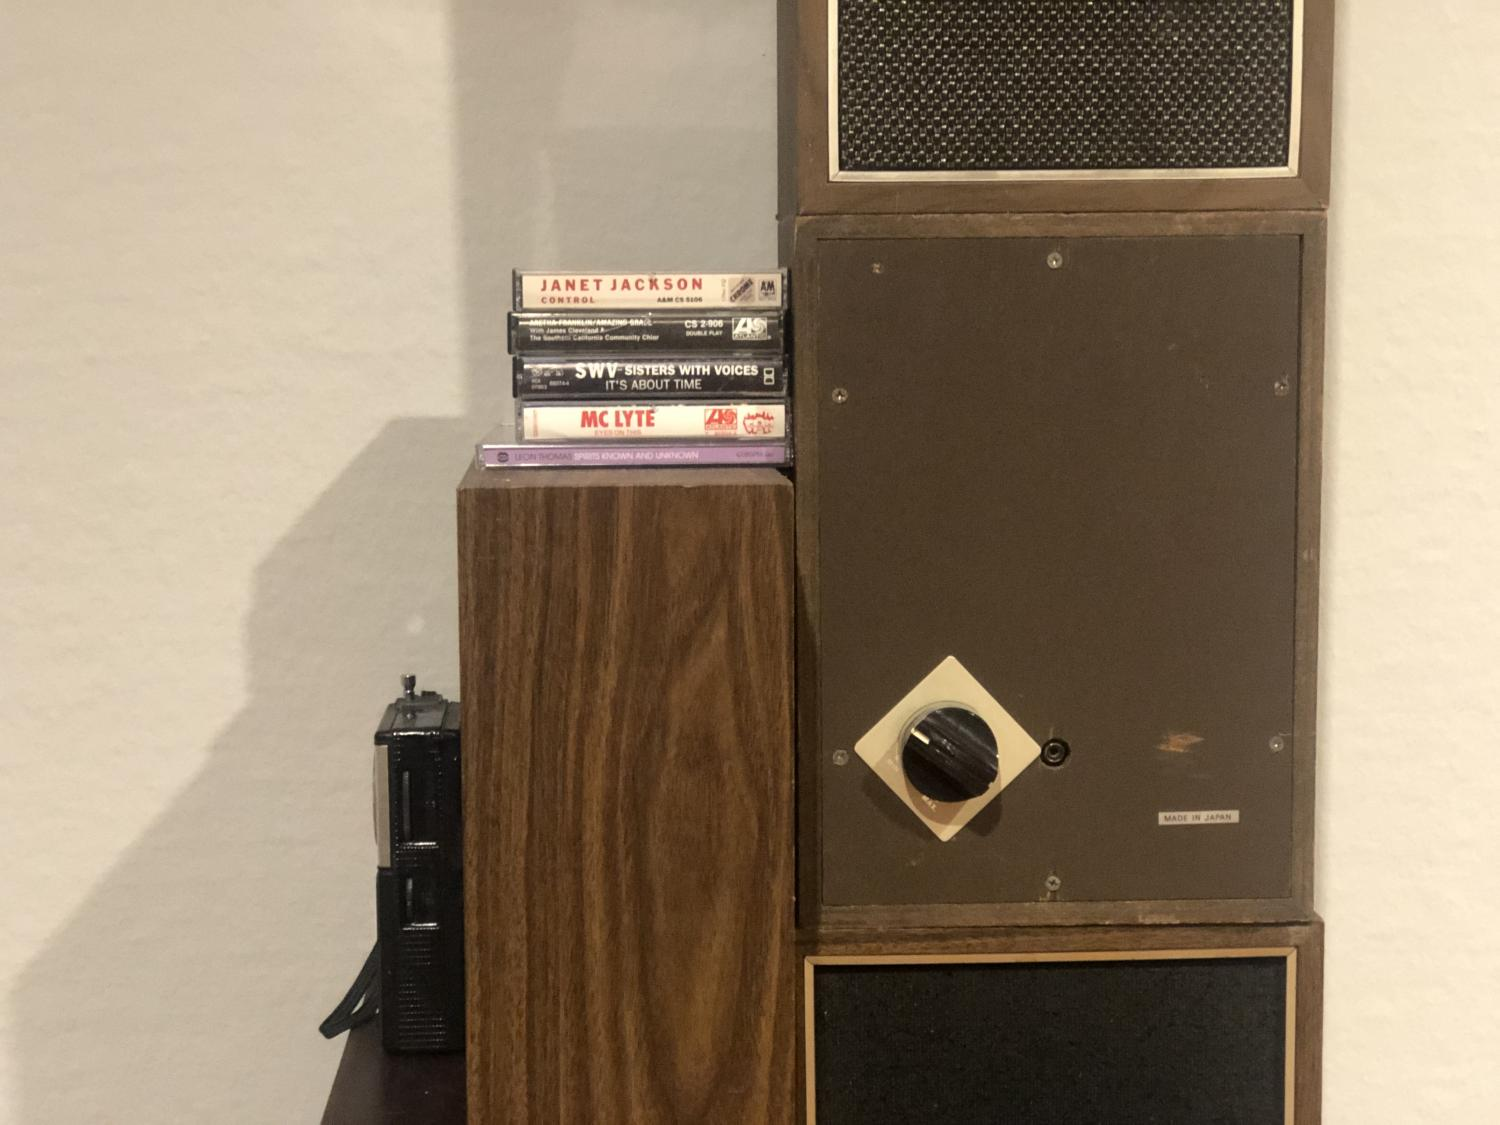 Gallery view of a stack of vintage speakers and cabinets with cassette tapes of favorite music from years ago.